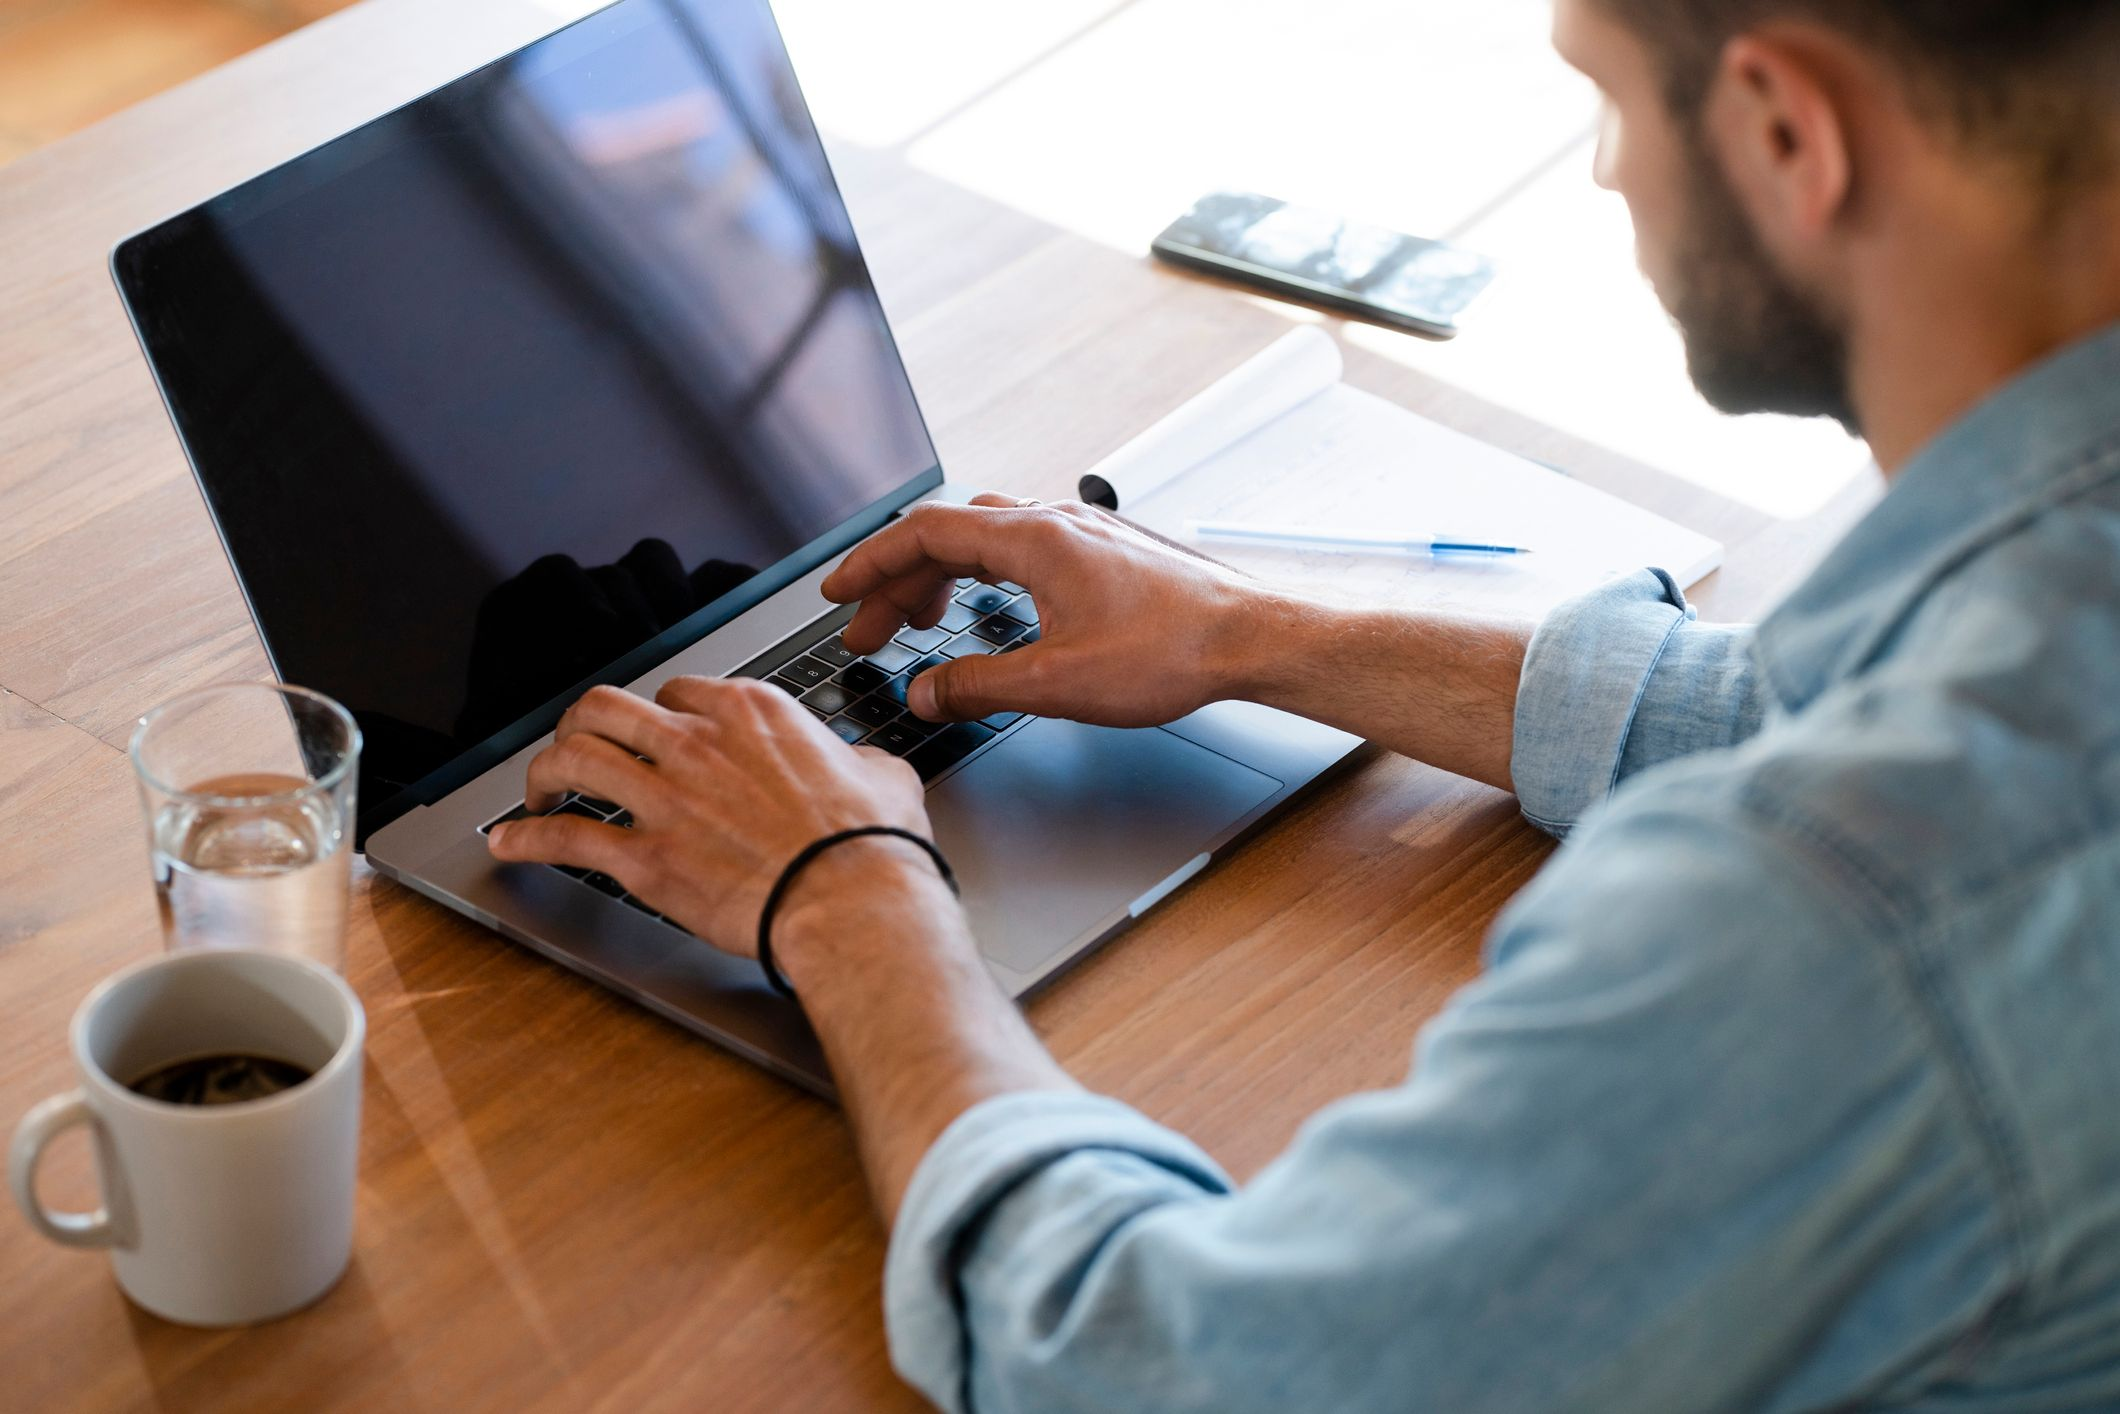 A man working on his laptop while having coffee.   Photo: Shutterstock